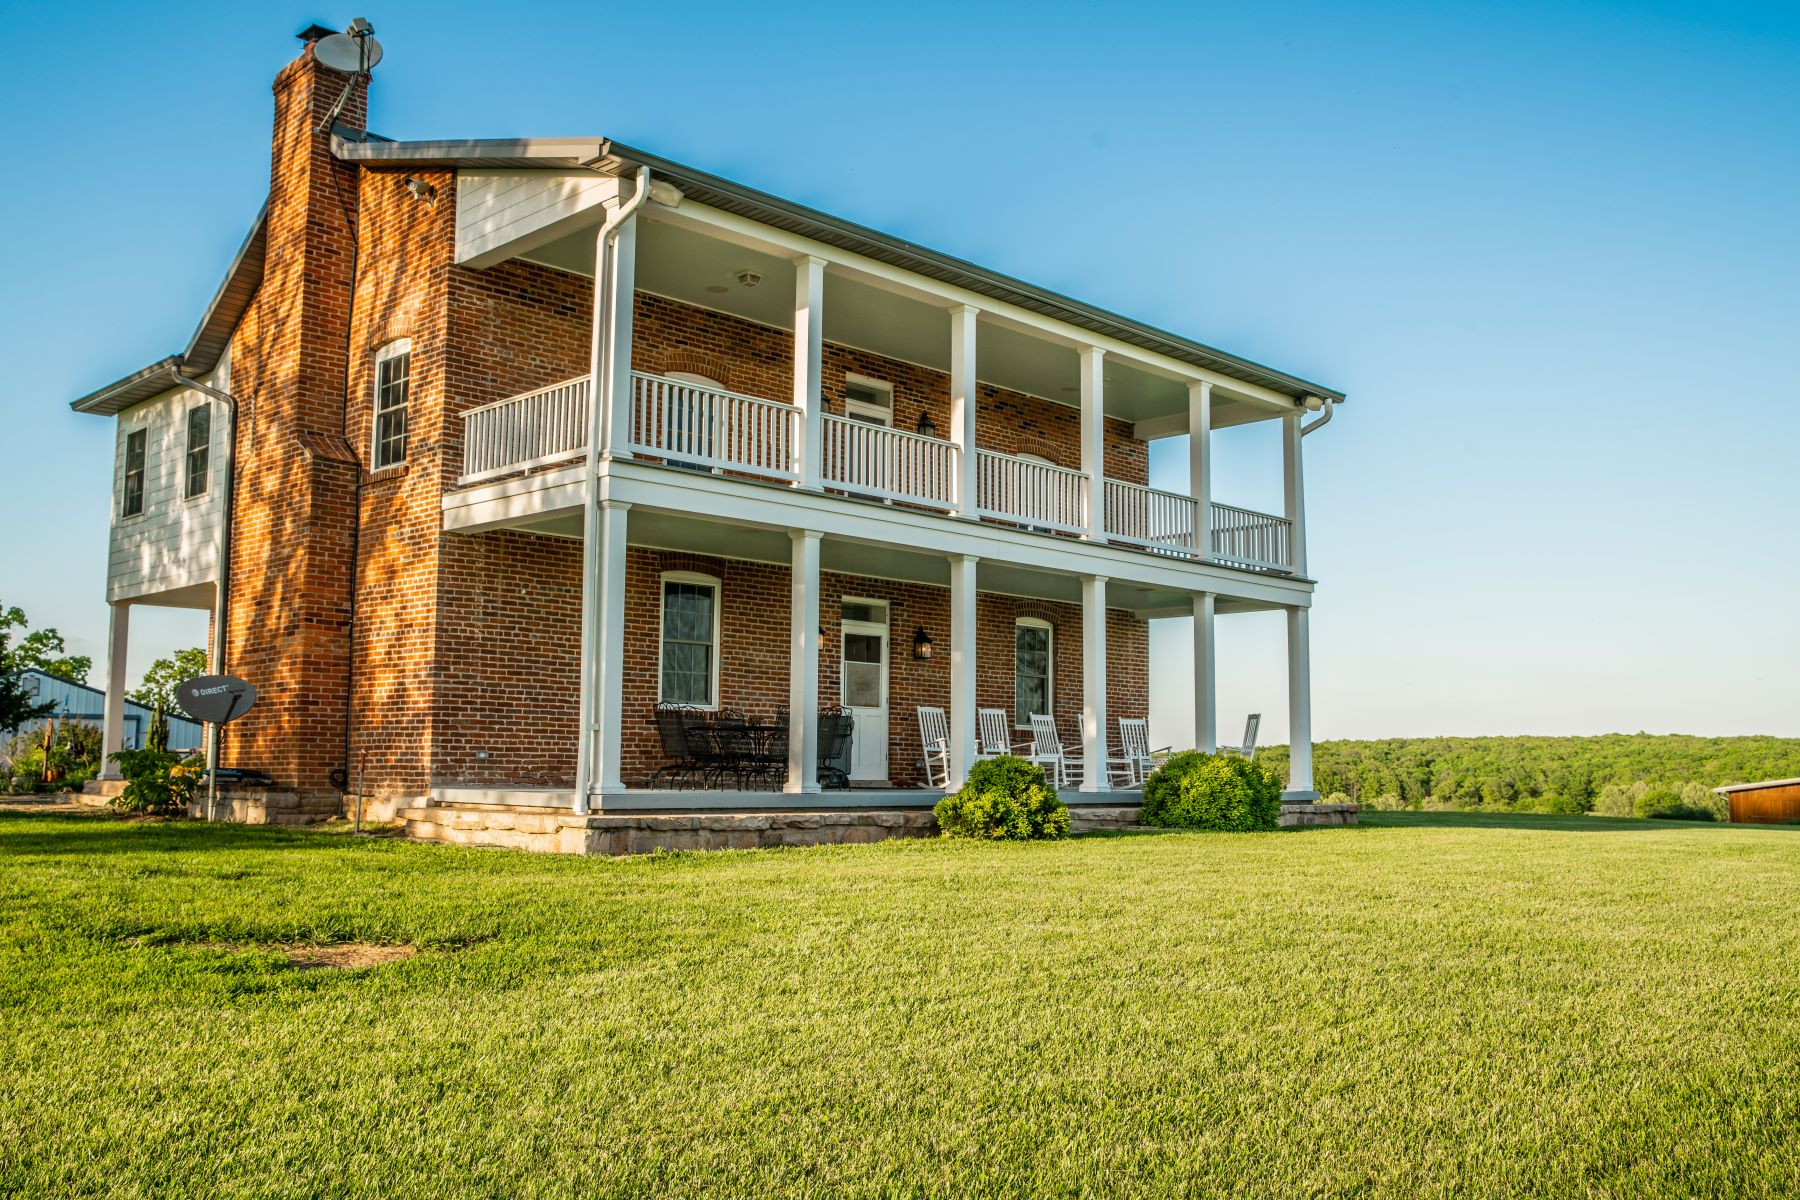 Single Family Homes for Sale at Beautiful Farm House on over 100 acres 2565 Melody Lane Cuba, Missouri 65453 United States